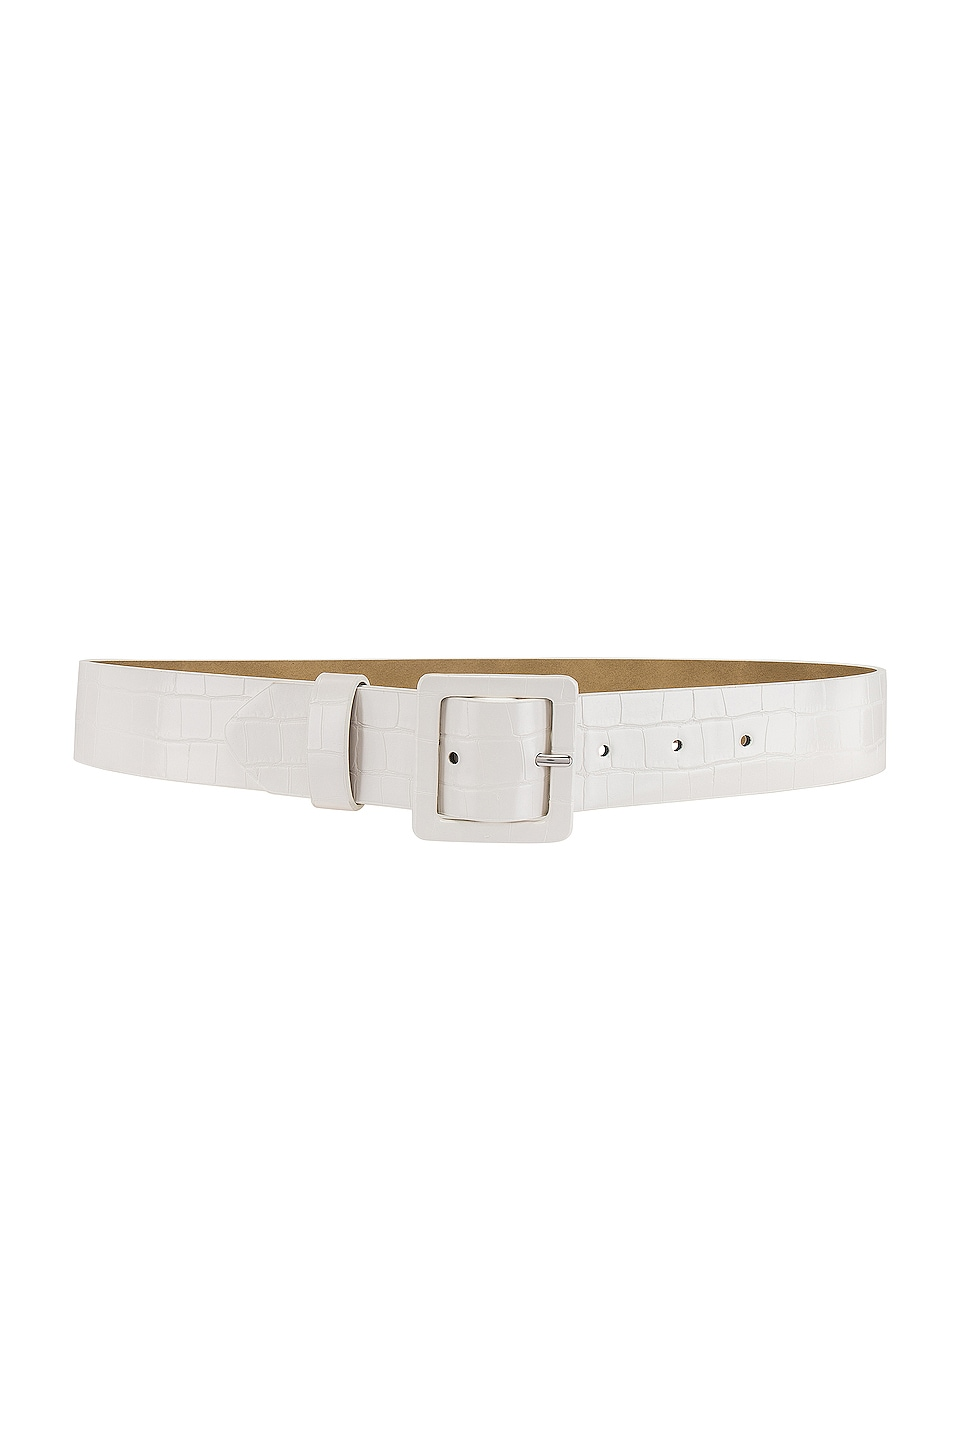 Lovers + Friends Gerri Belt in White Croco